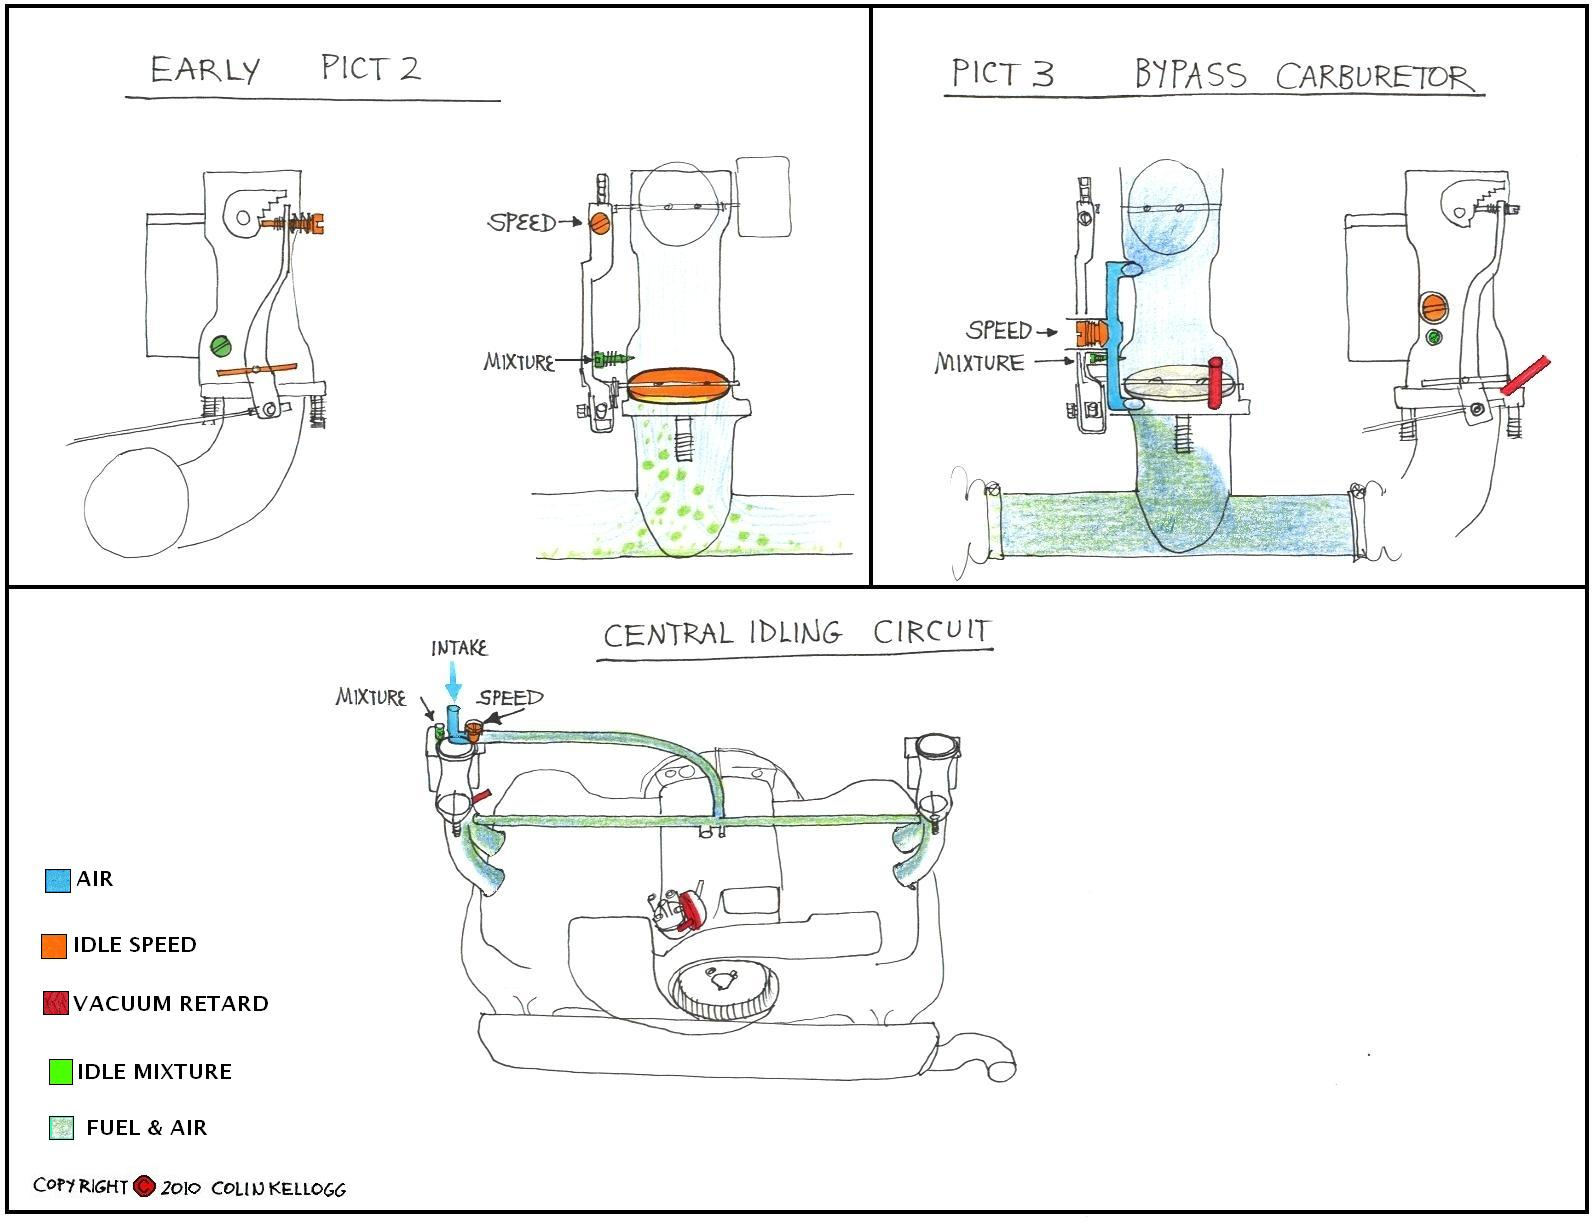 Triumph Wiring Diagram Dual Carbs Library Pin Keihin Cvk Carburetor On Pinterest Image May Have Been Reduced In Size Click To View Fullscreen